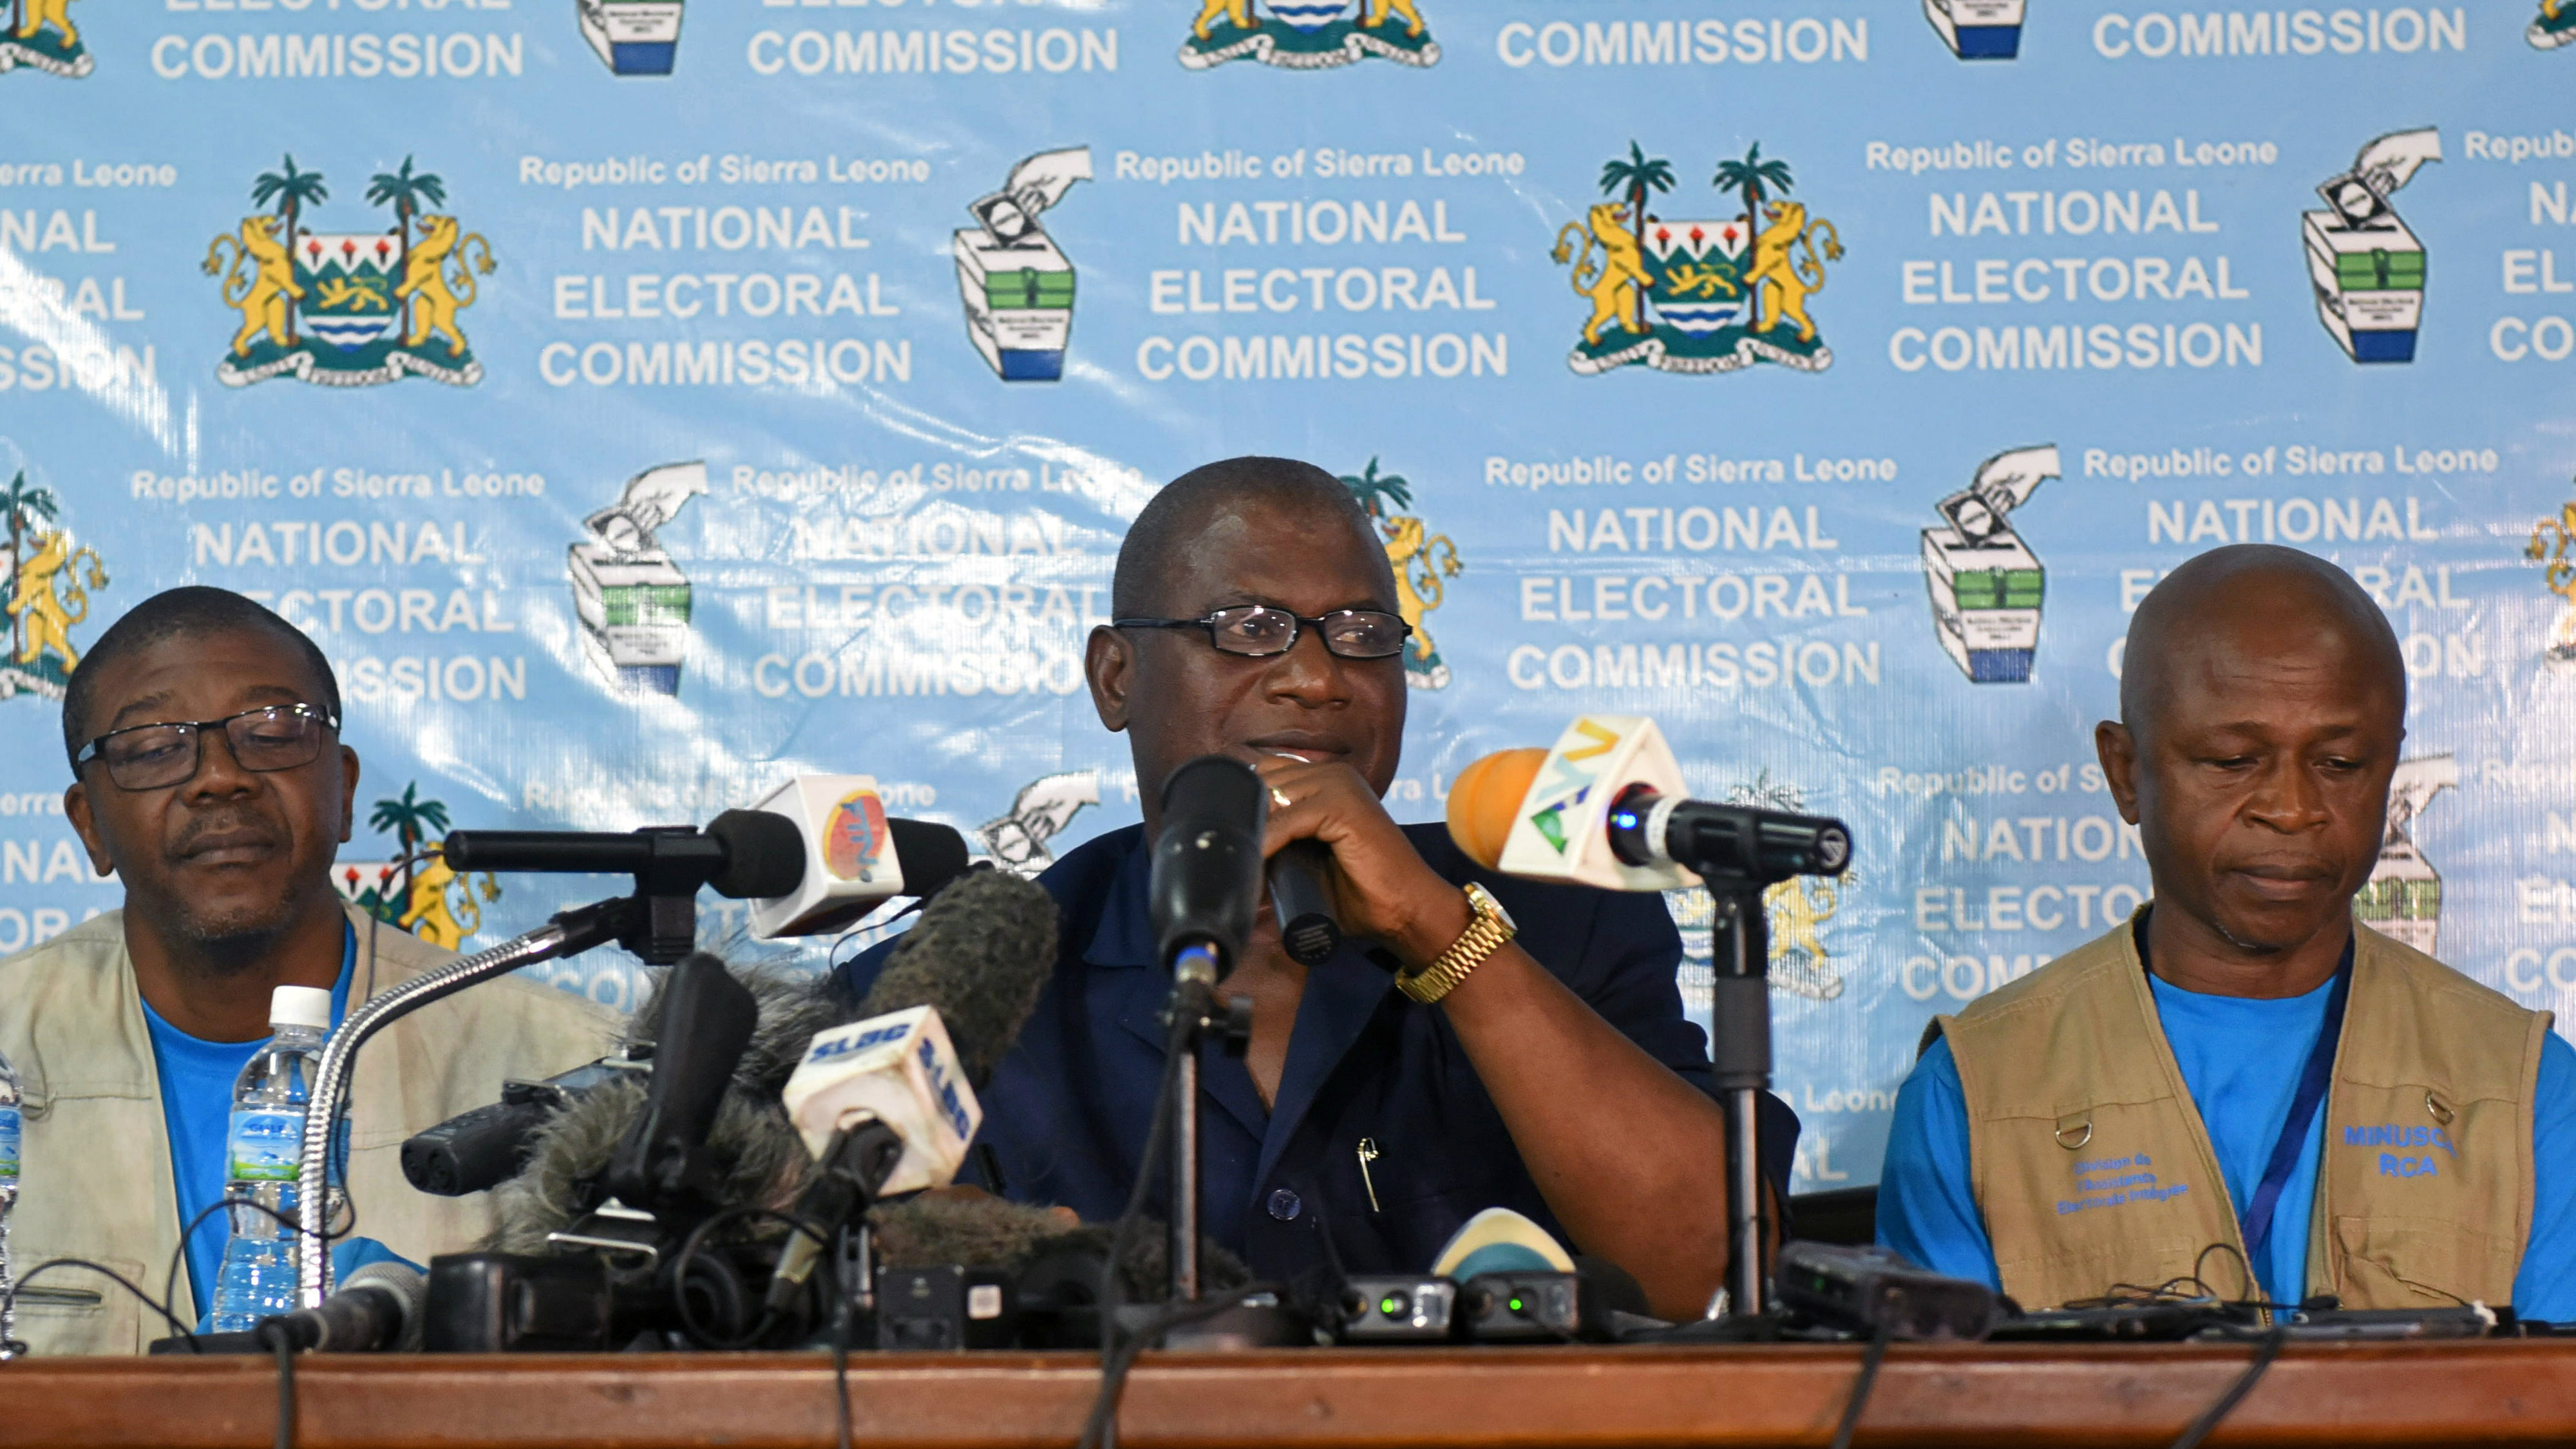 Chairman of Sierra Leone's National Electoral Commission, Mohamed Nfa Ali Conteh, announces the results of the first round of Sierra Leone presidential election in Freetown, Sierra Leone March 13, 2018.